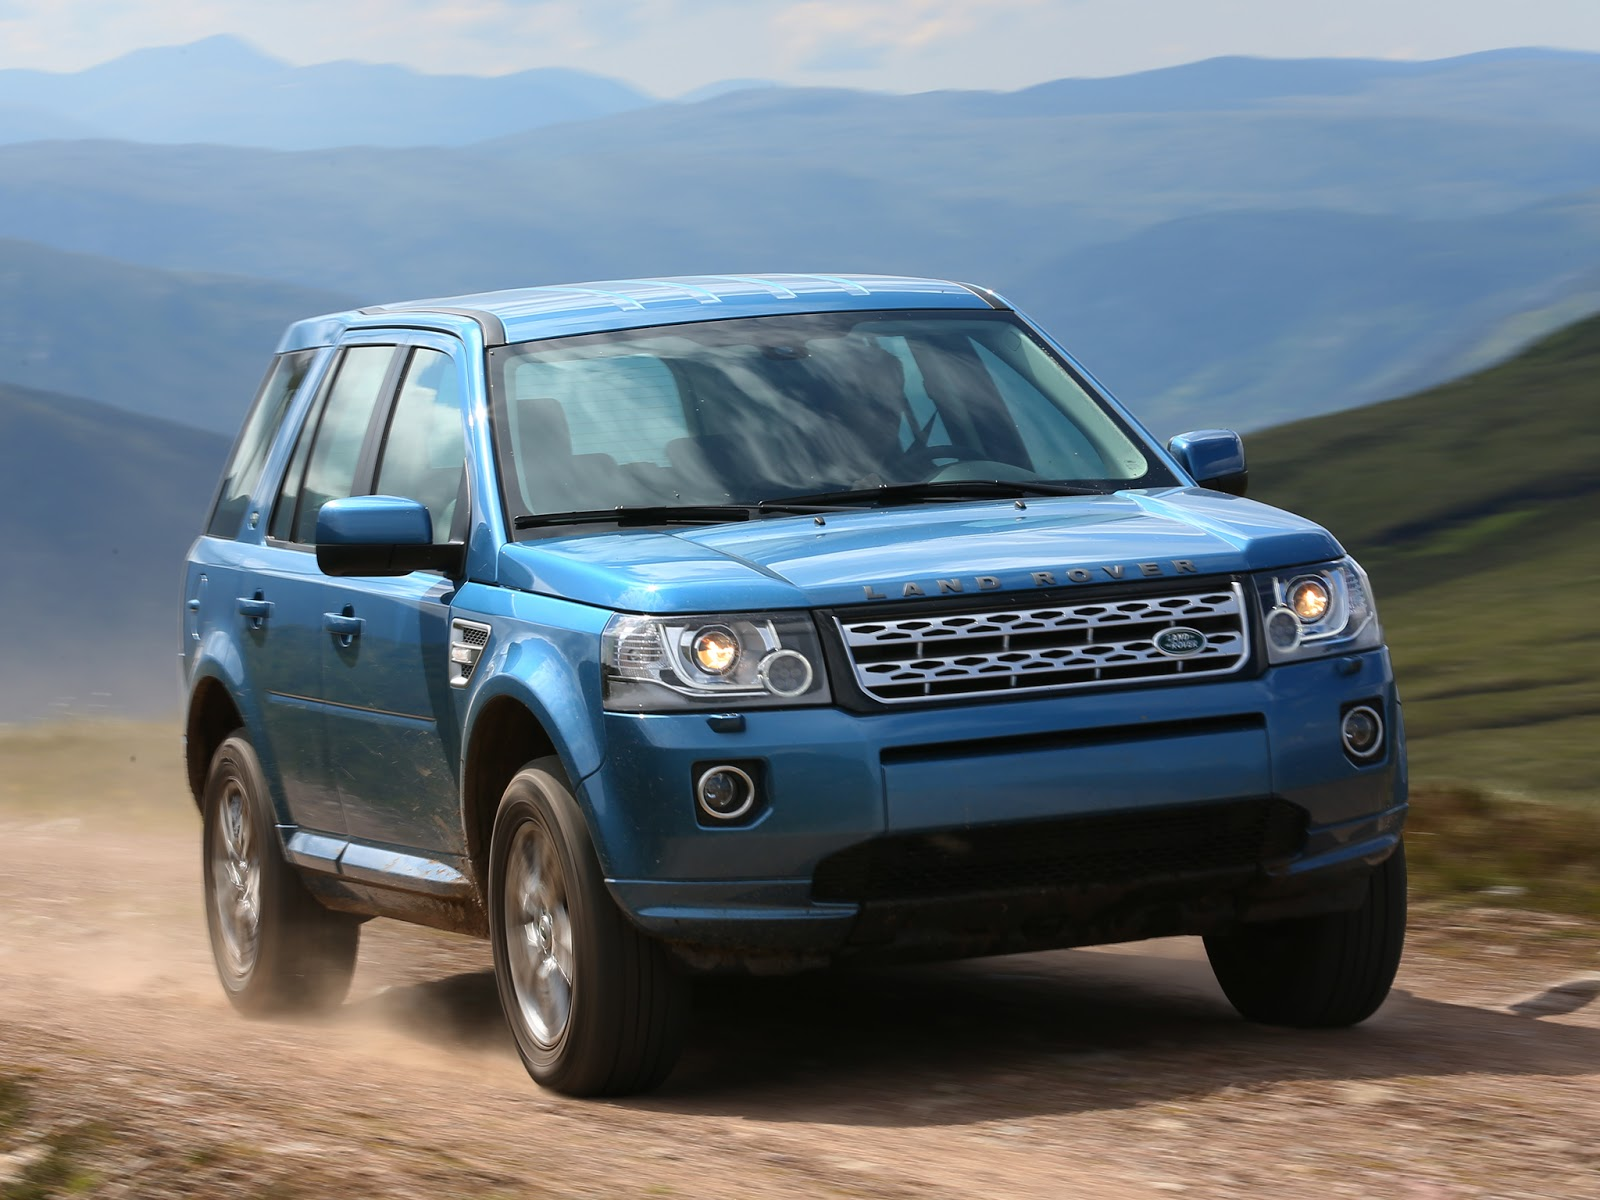 car in Land Rover Freelander 2 2013